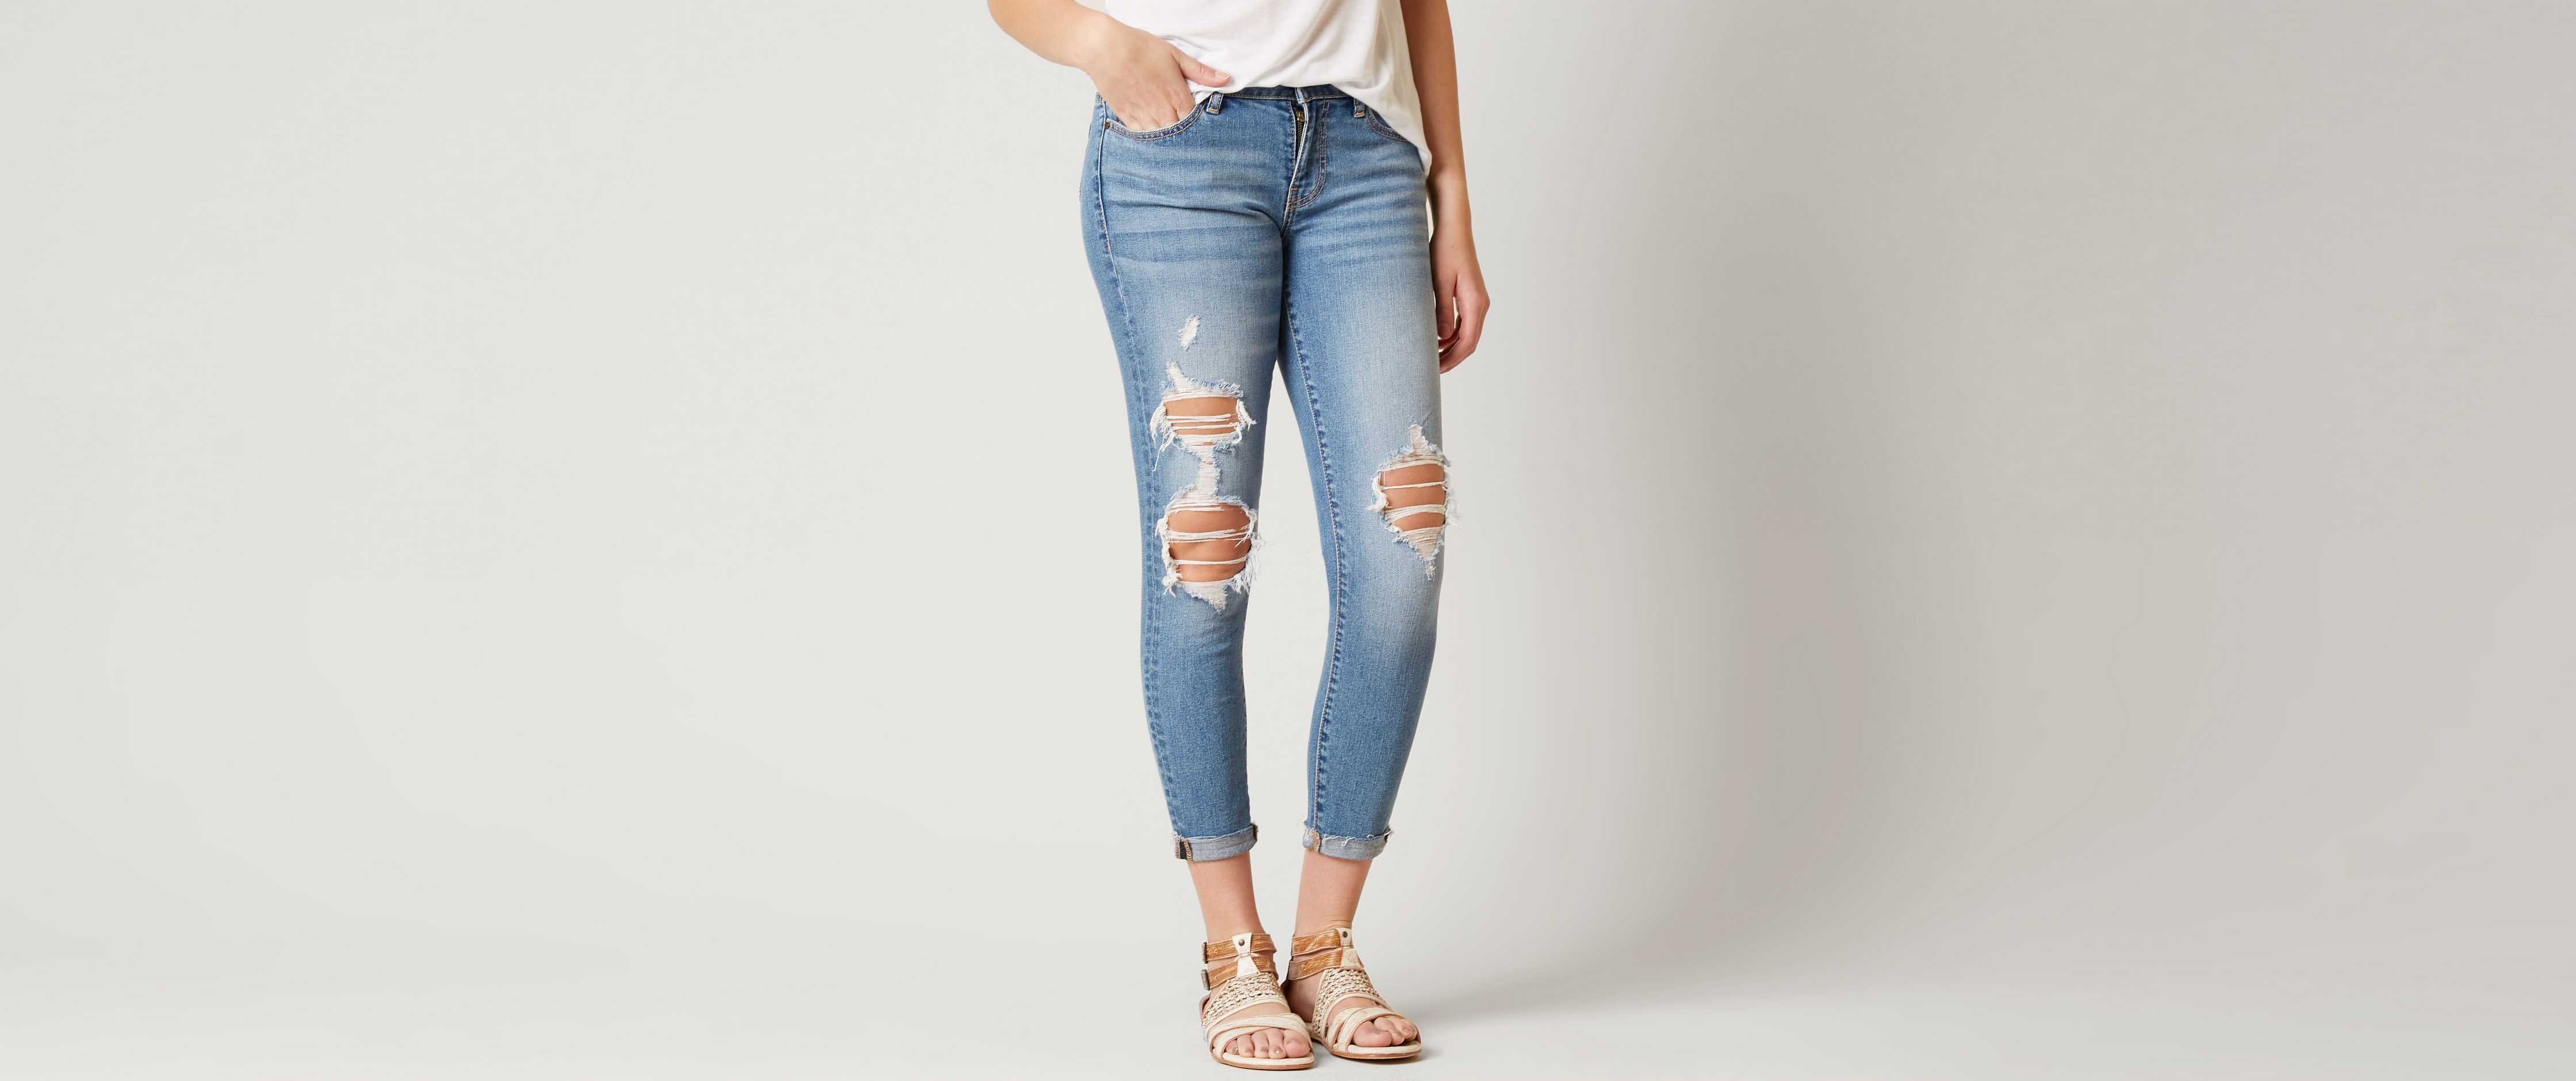 Rock with jeans for women